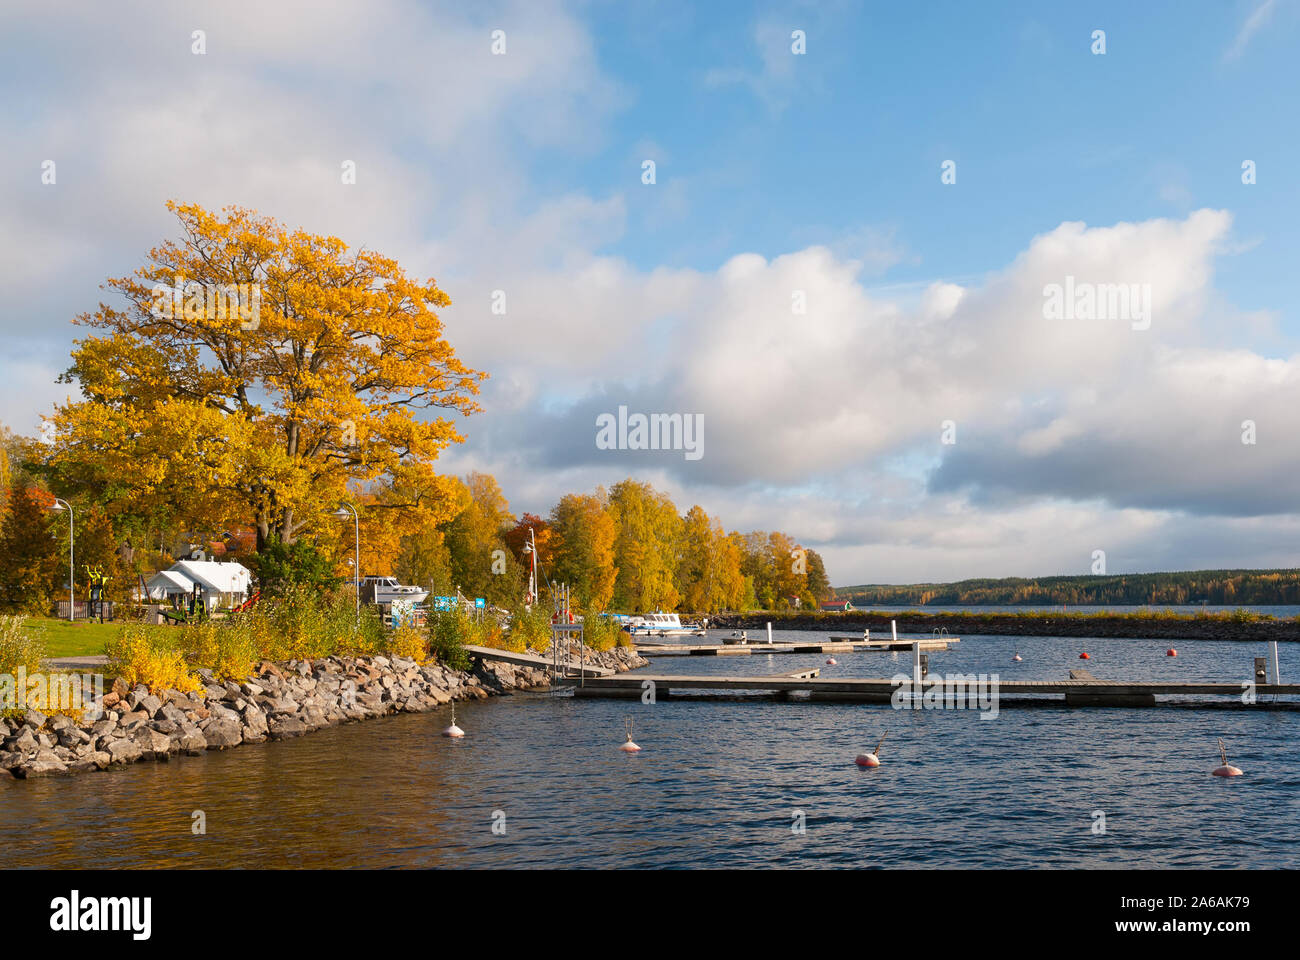 Puumala, Finland–October 5, 2019: Shore of the Saimaa Lake with access to the pier in Puumala Municipality. Southern Savonia (Savo) Region Stock Photo